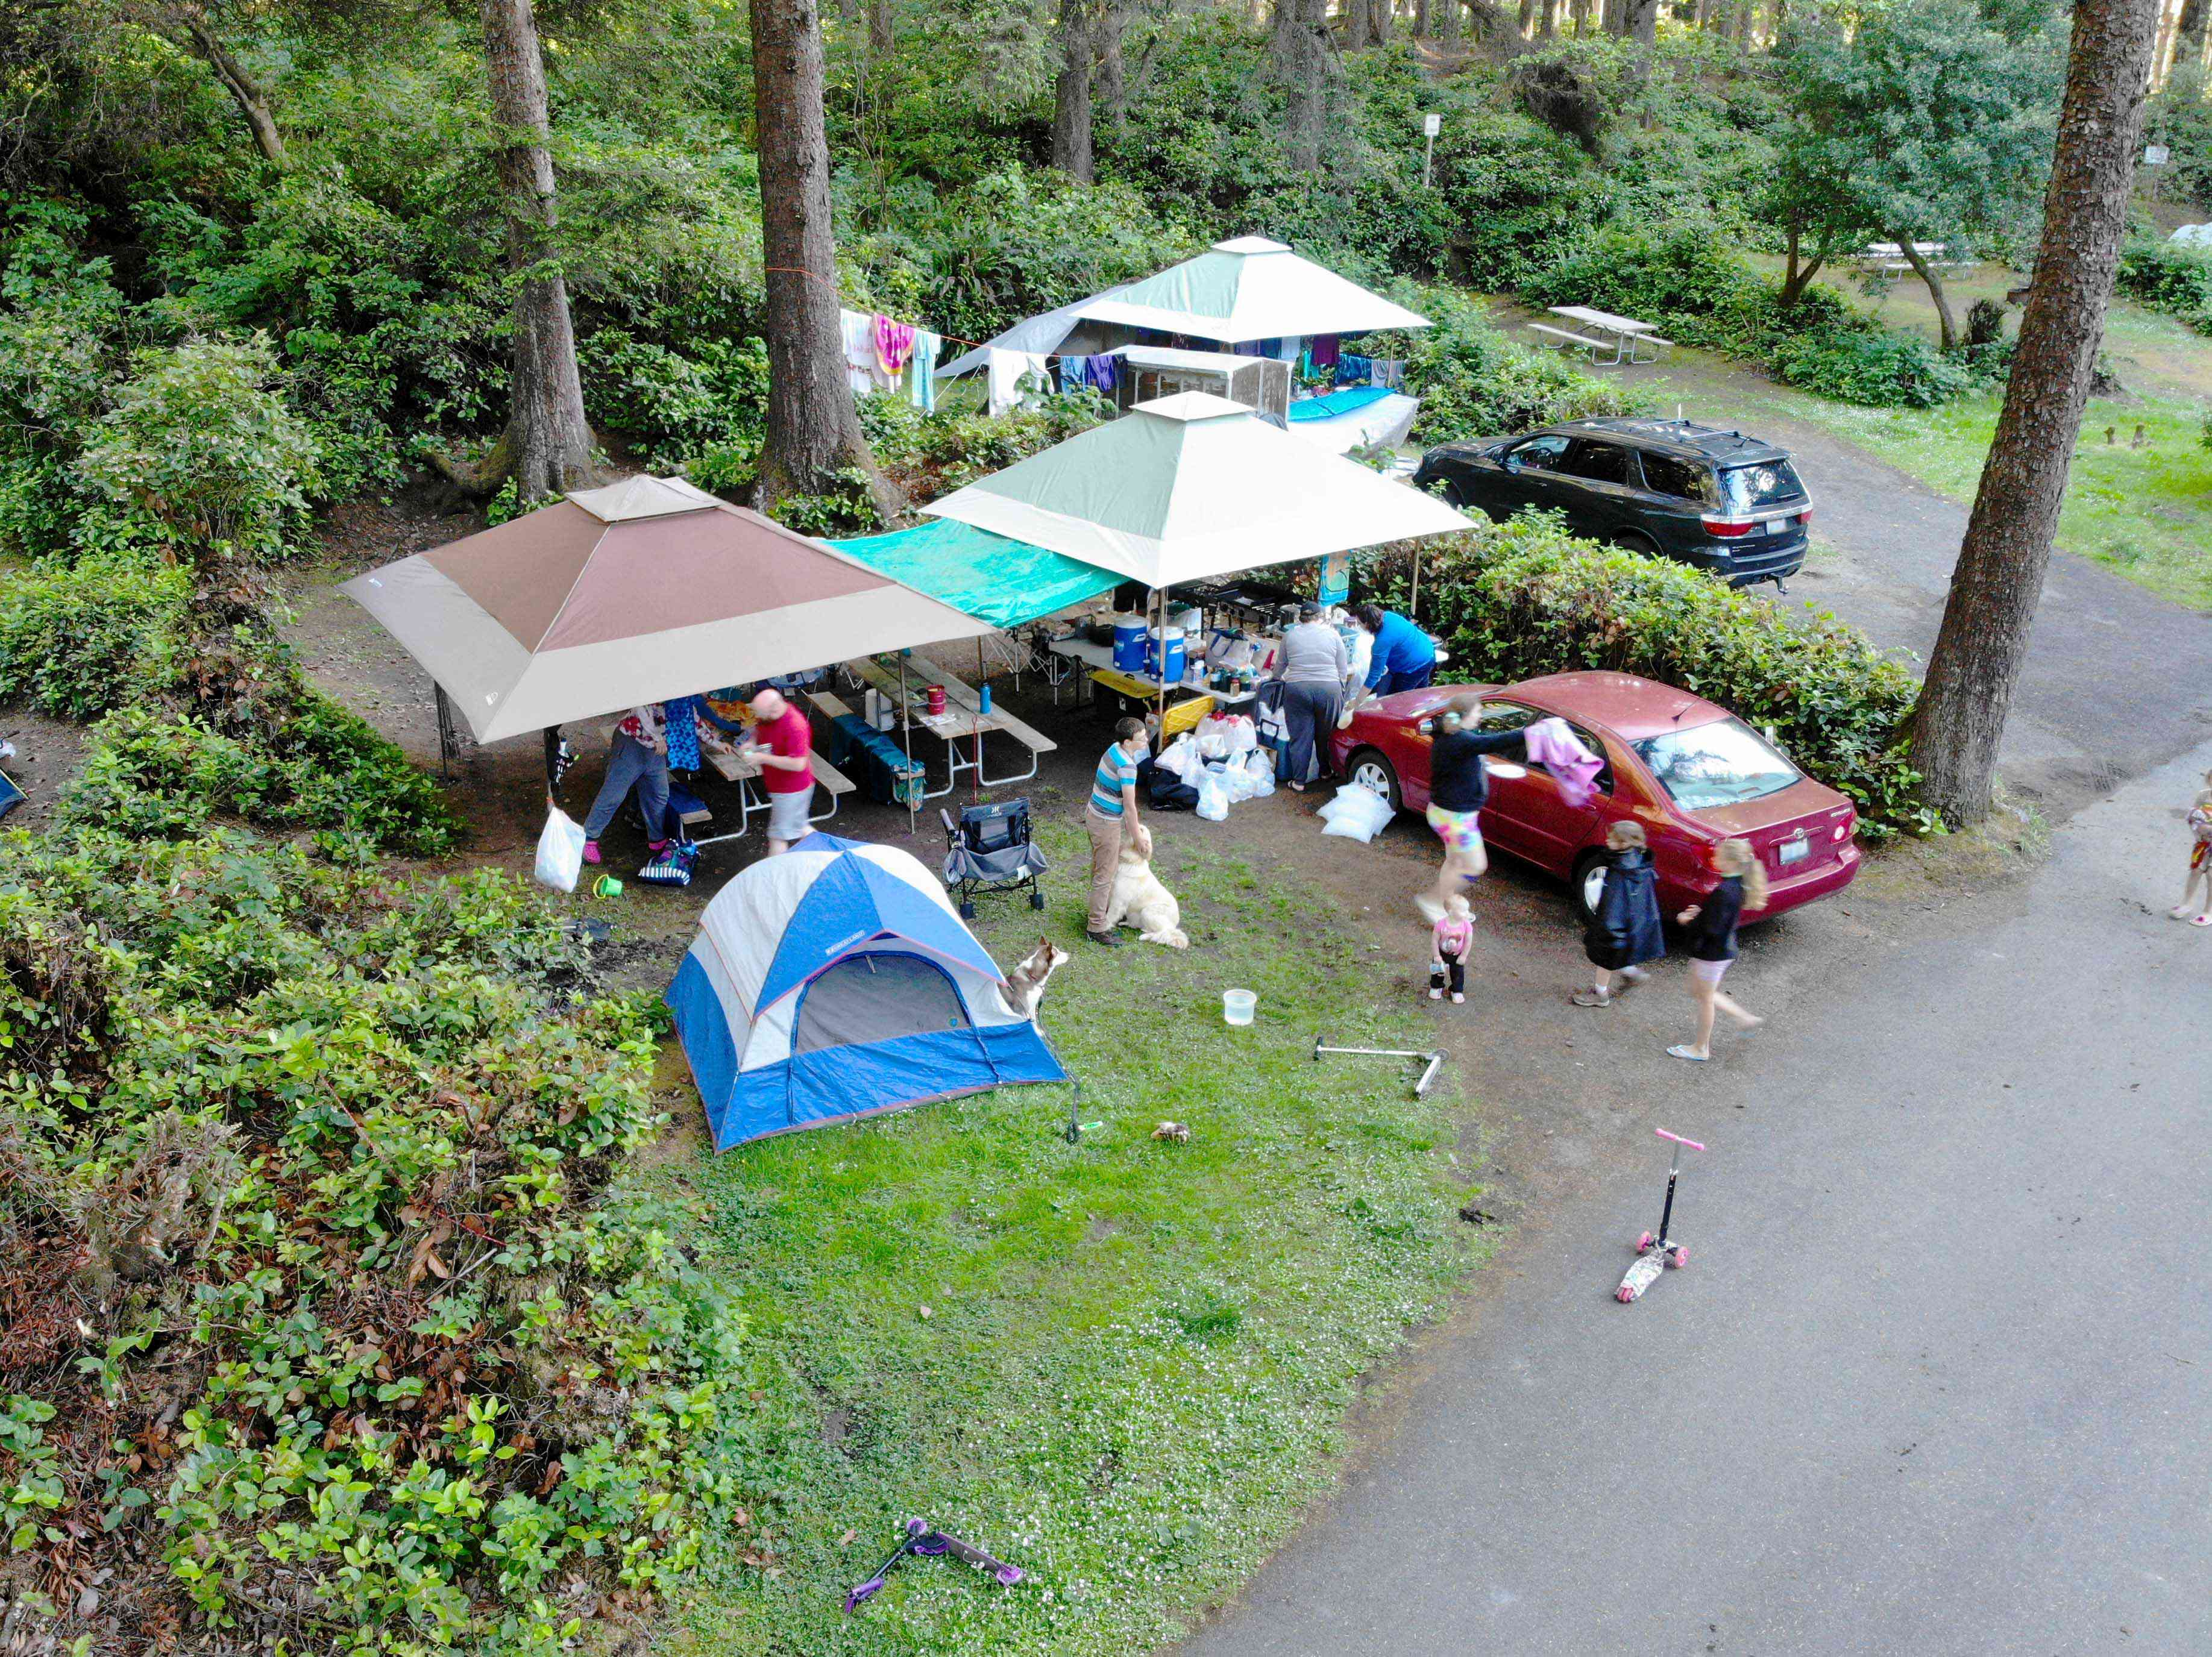 birds' eye view of big family camping, with tent and dogs and kids playing on scooters